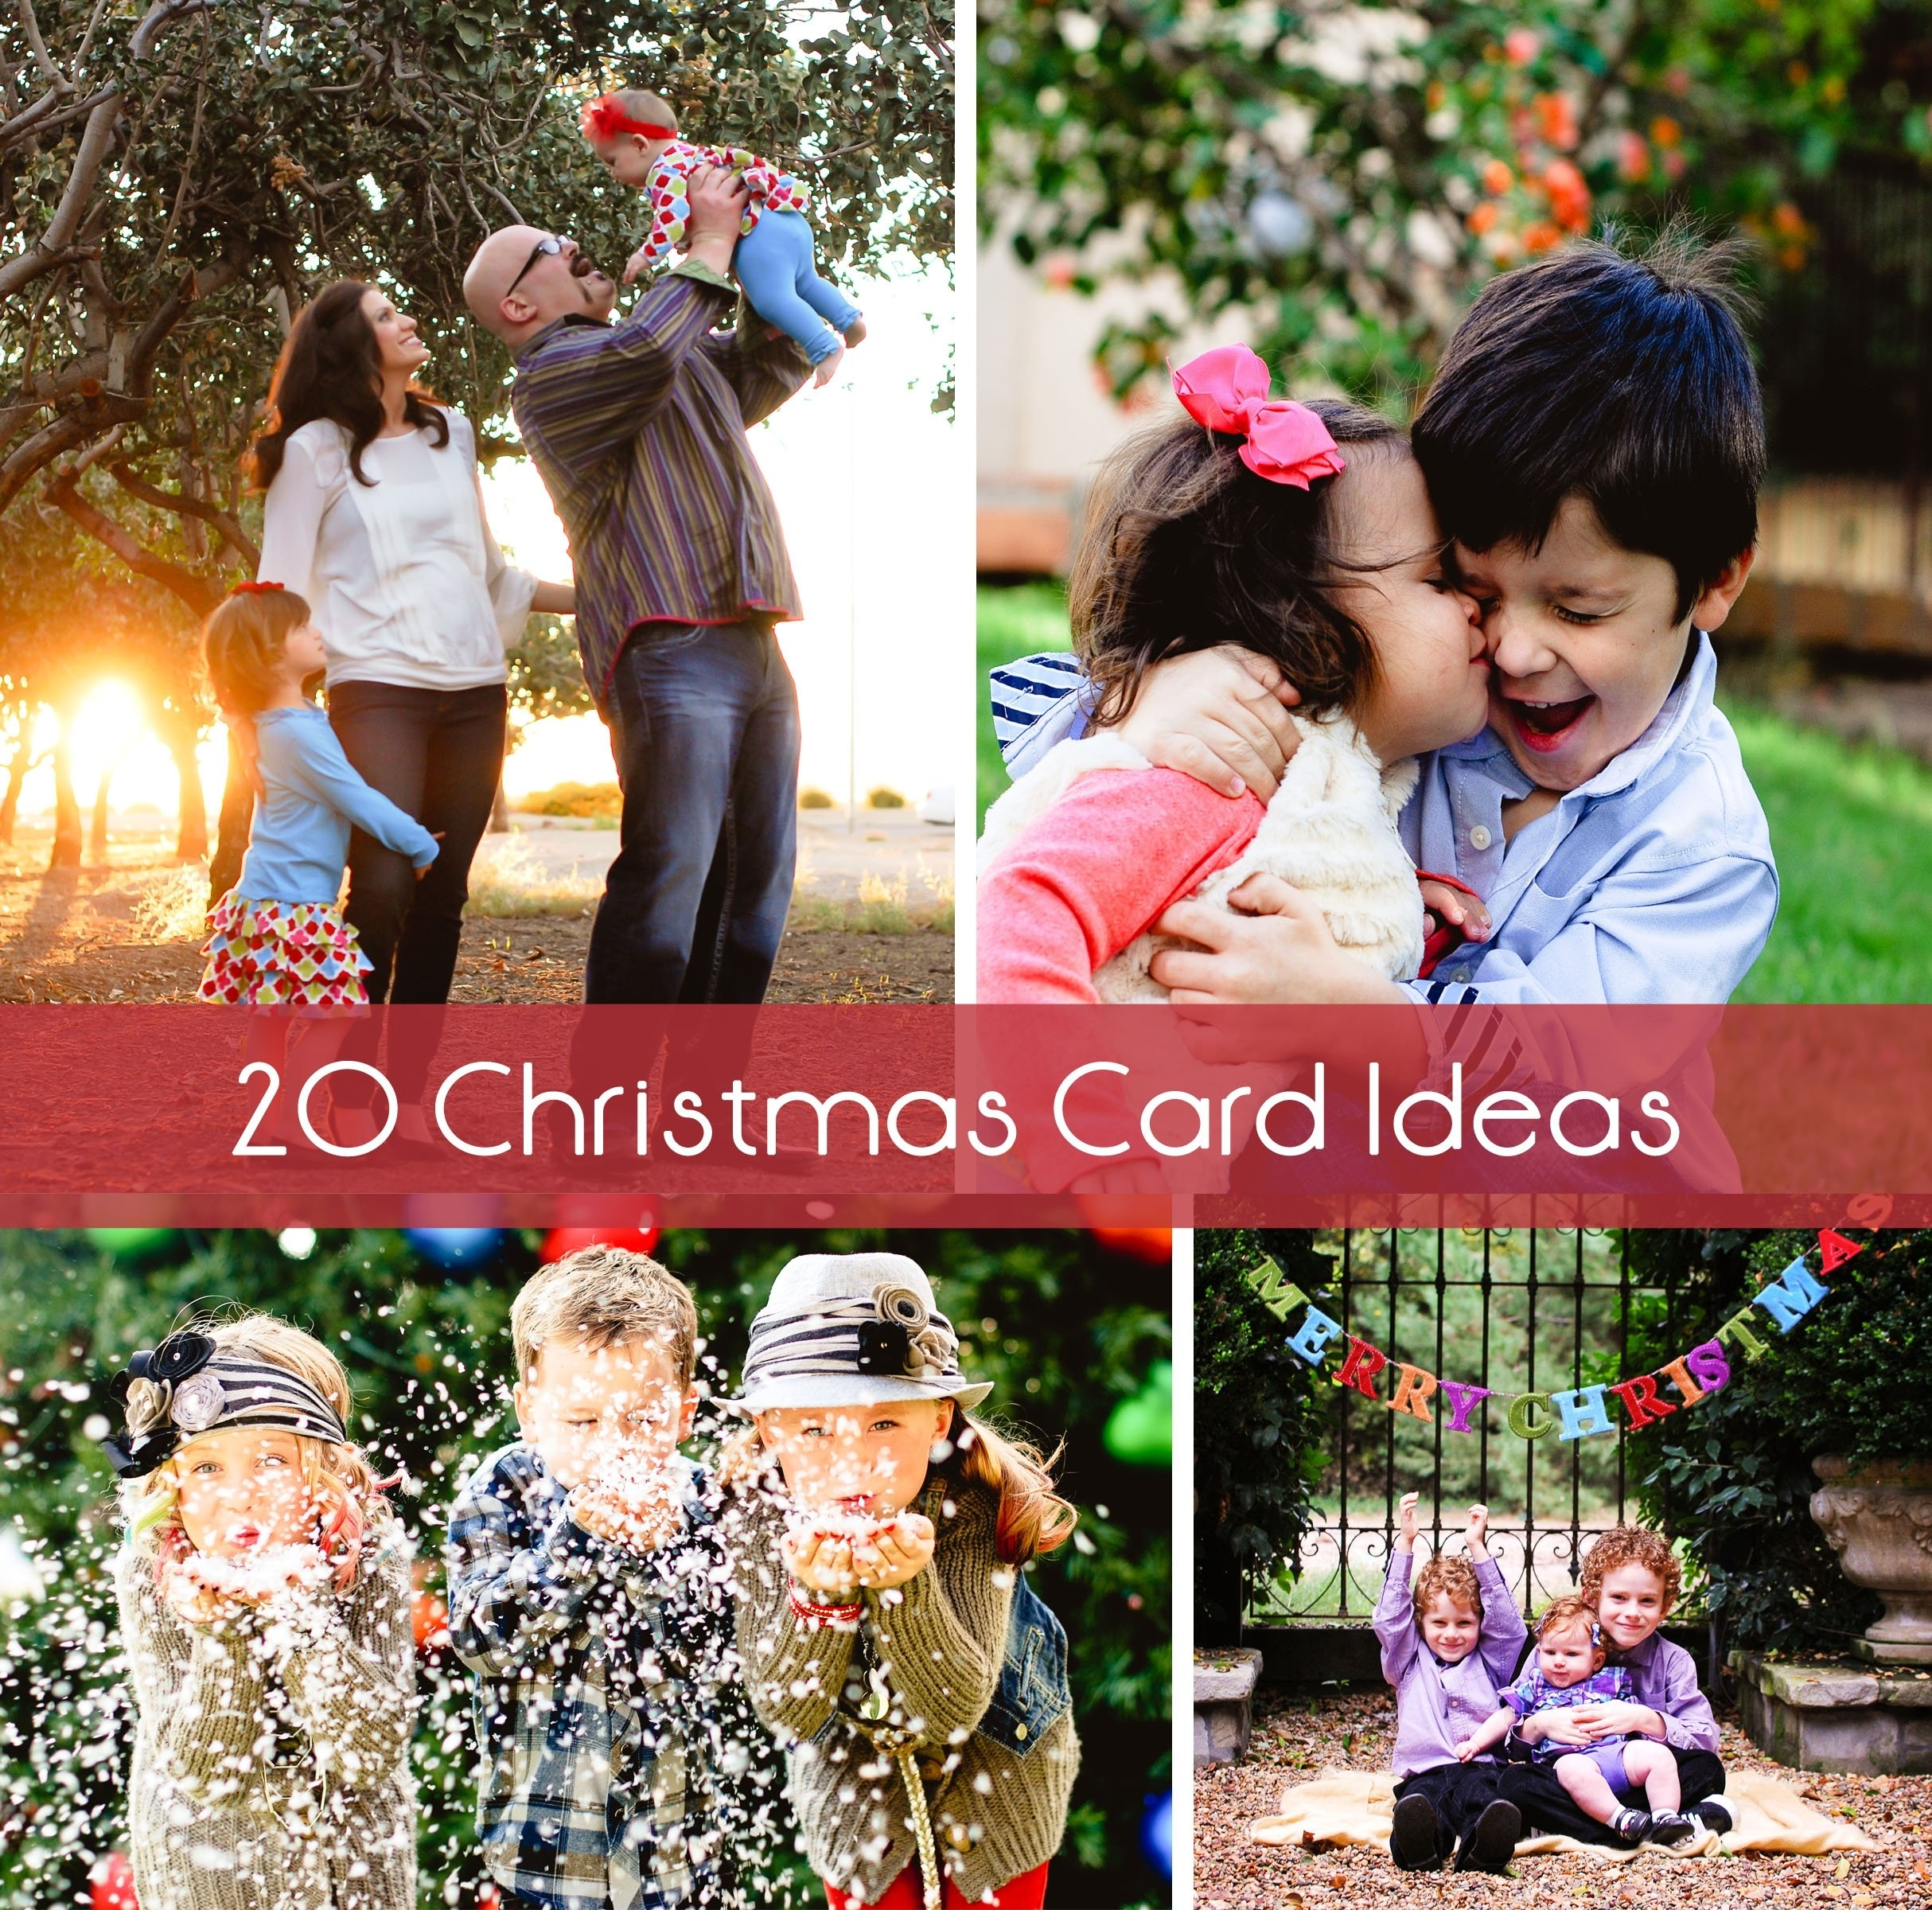 10 Fantastic Picture Ideas For Christmas Cards elegant christmas card photo poses ideas selection photo and